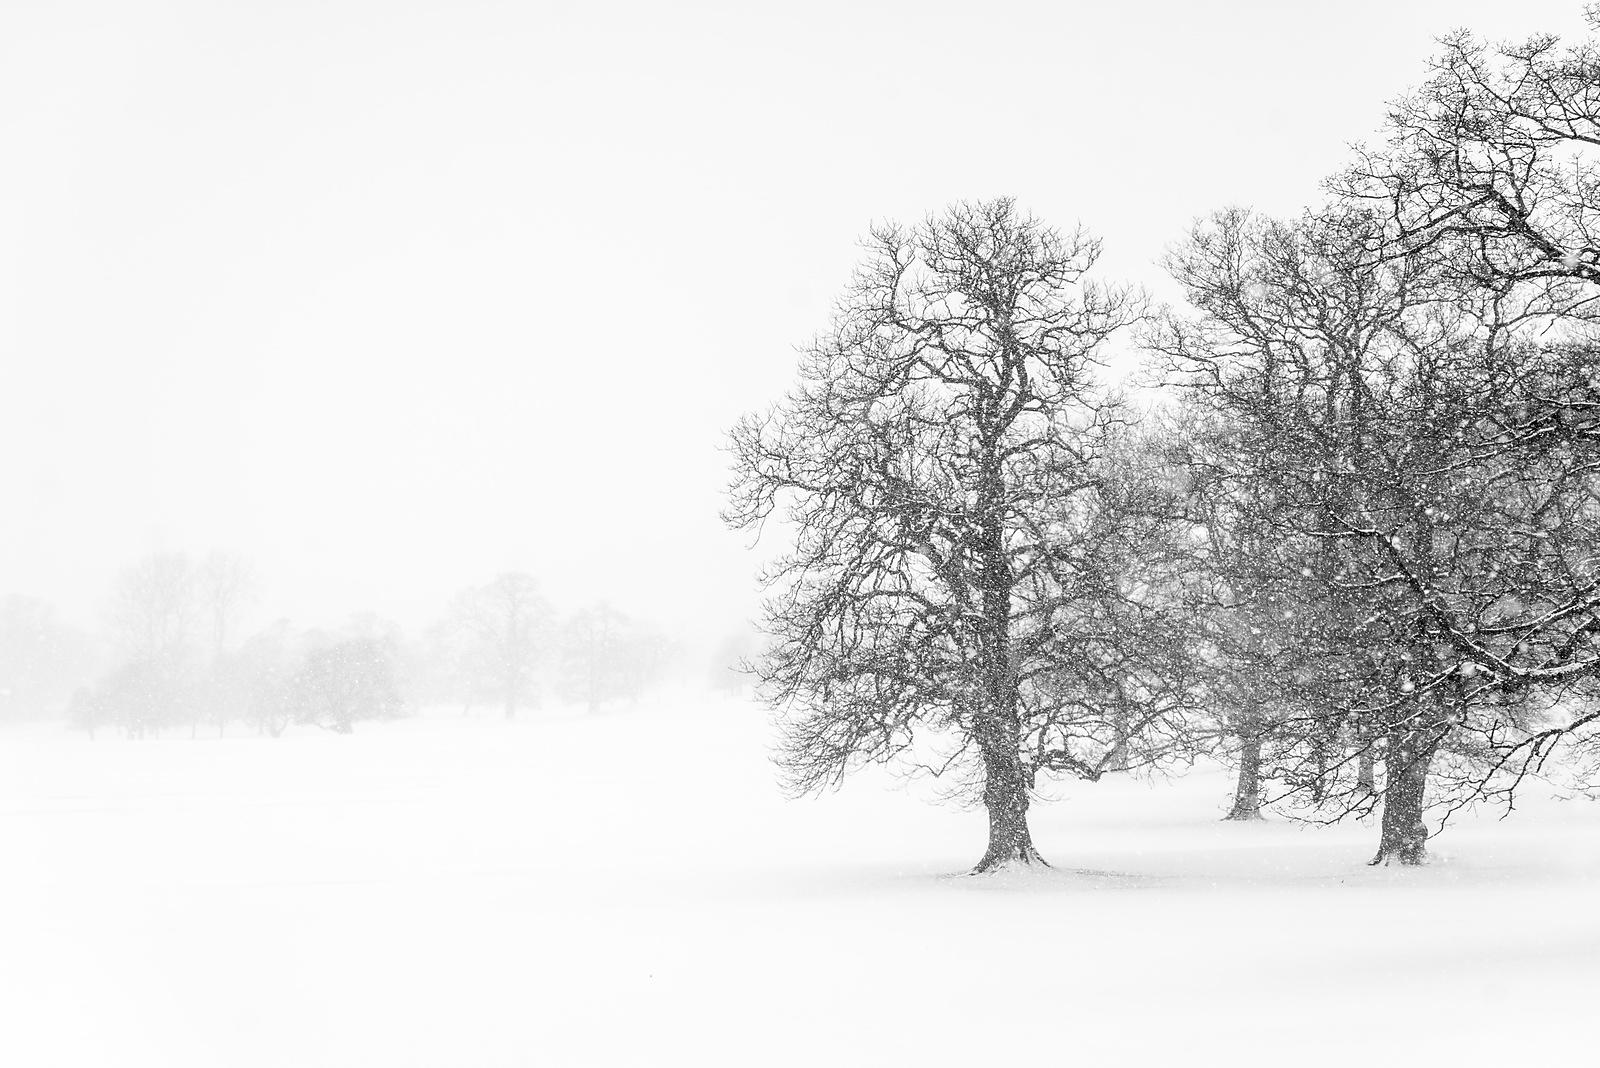 Chatsworth trees in snow